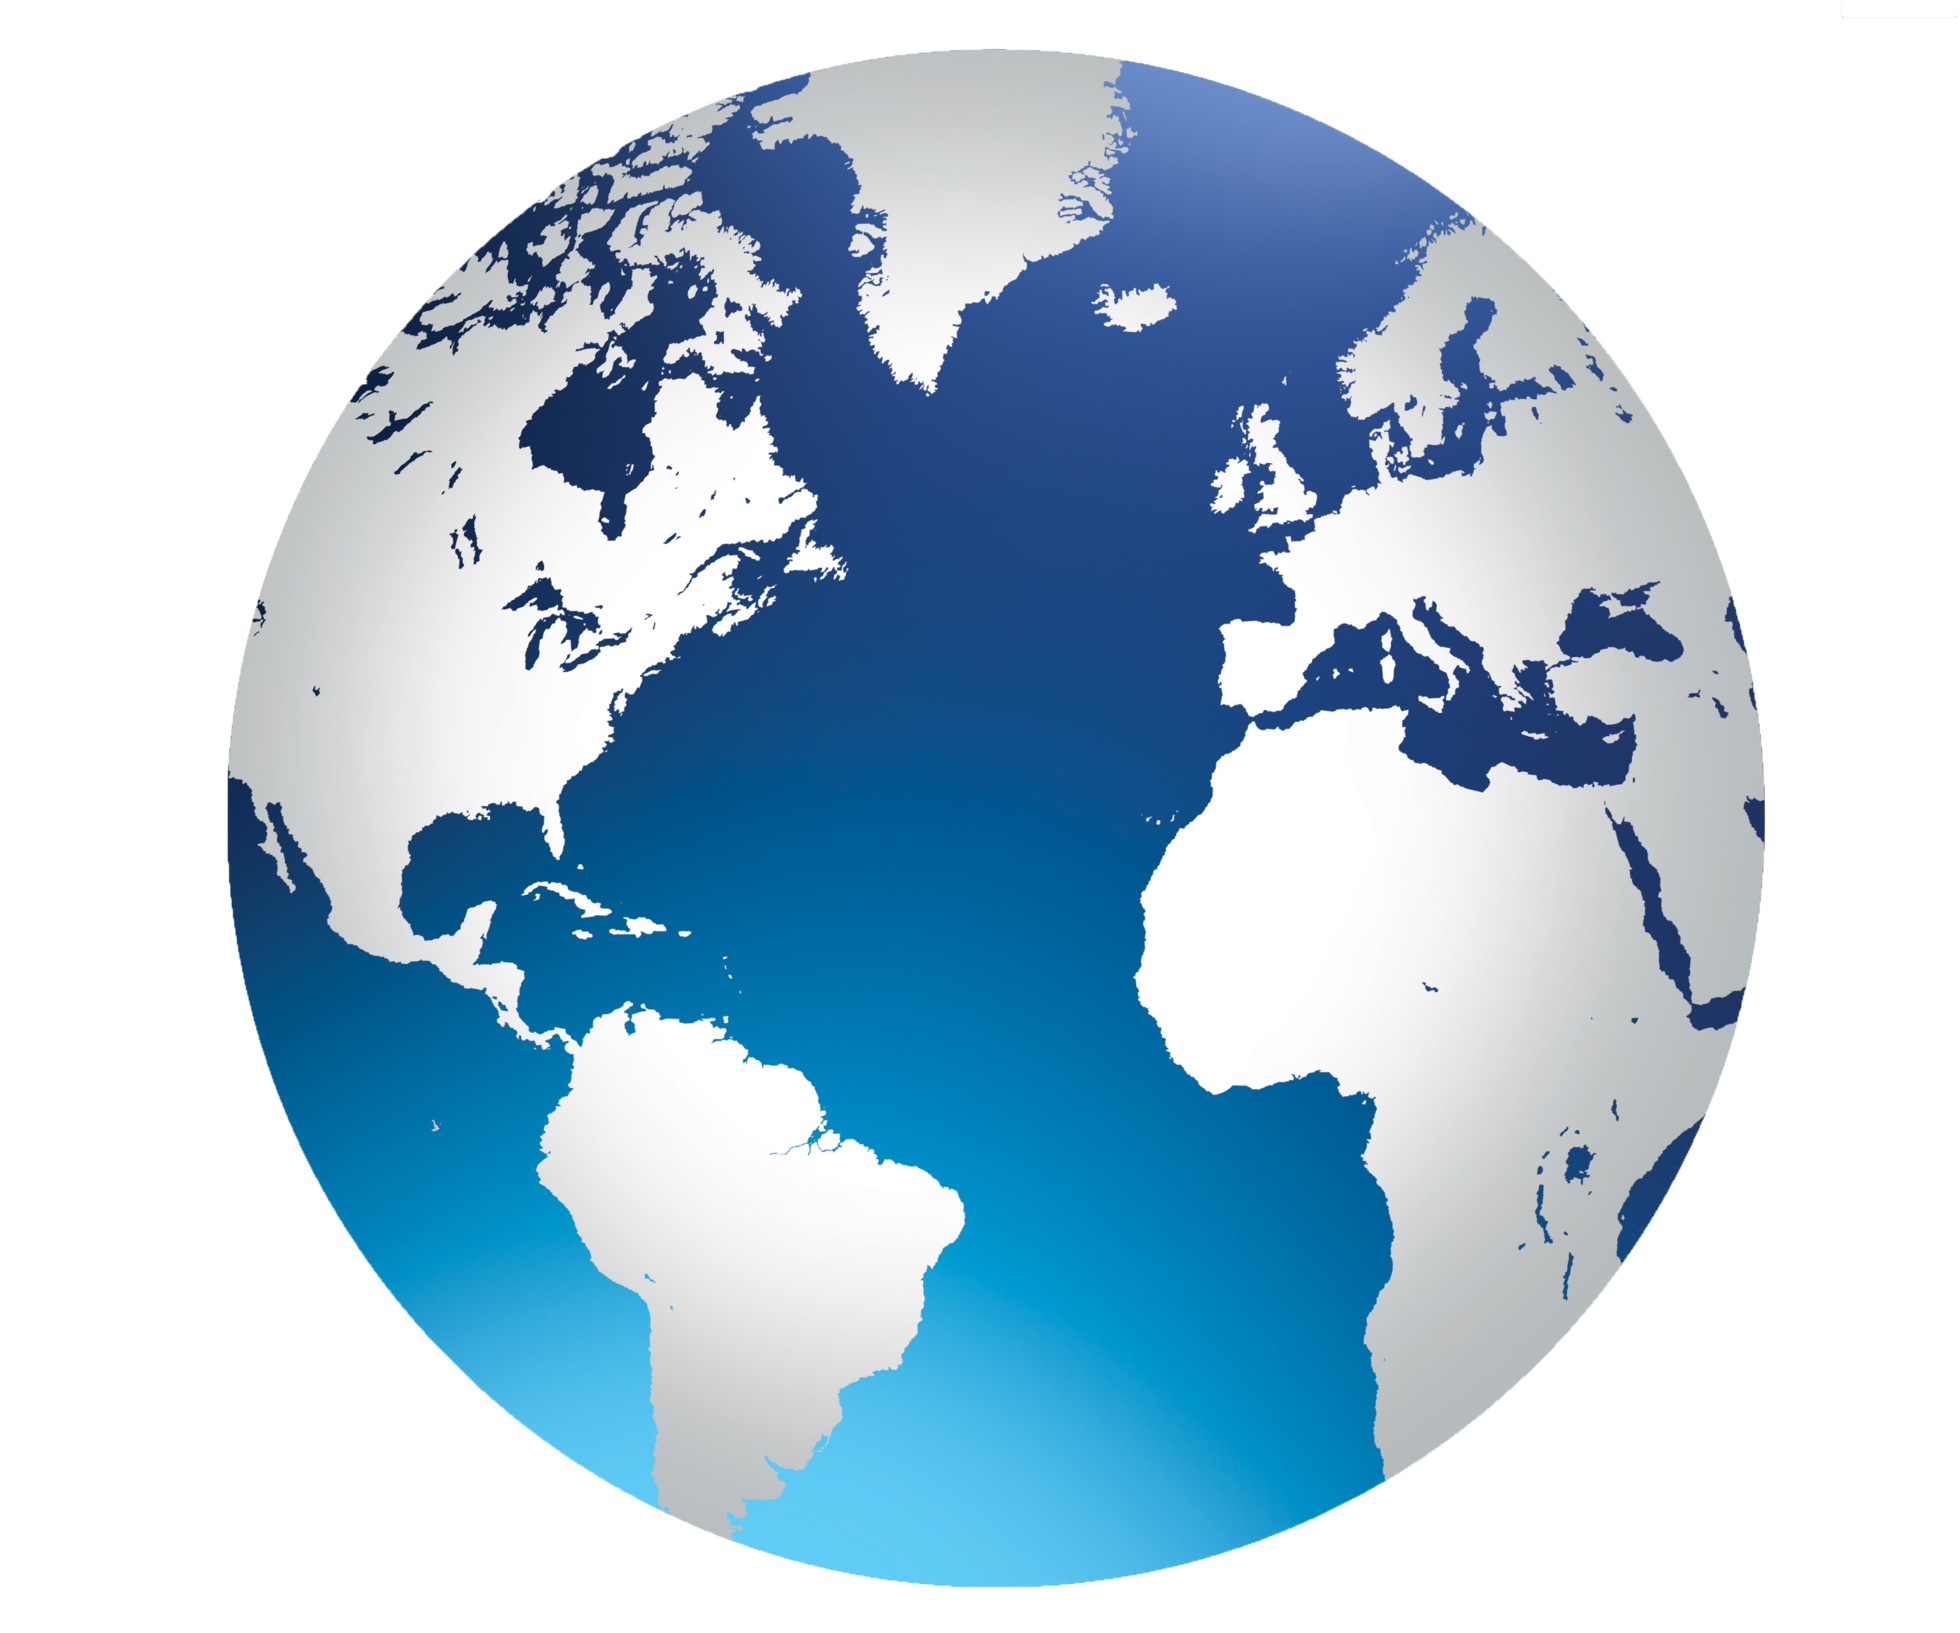 hd png image of world globe transparent - Google Search ...